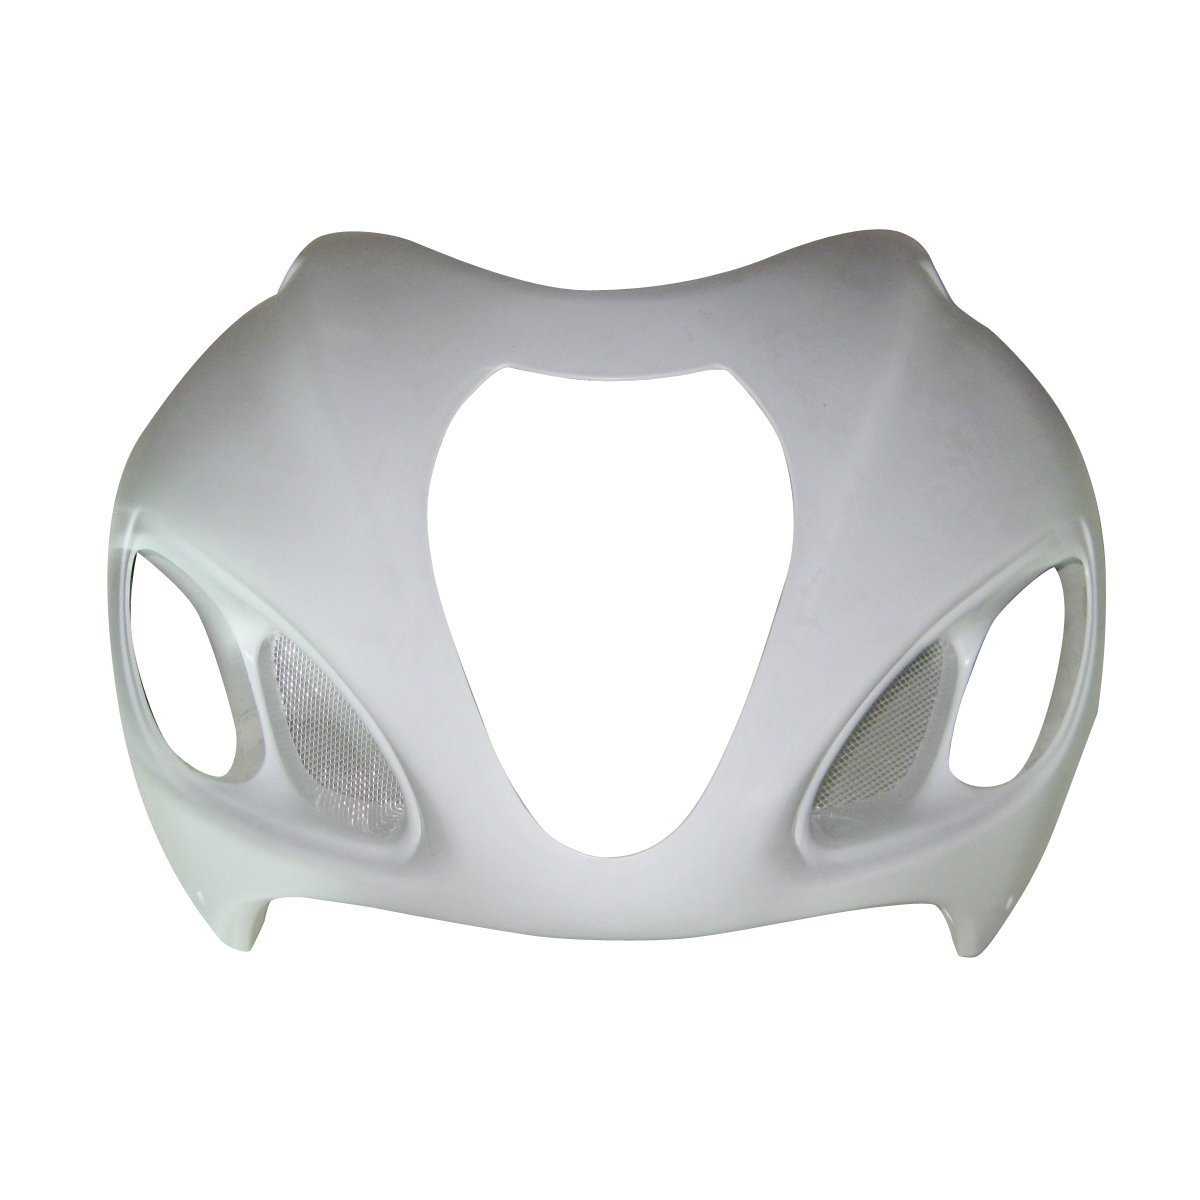 Motorbike Unpainted Front Upper Cowl Fairing For Suzuki HAYABUSA GSX-R 1300R GSXR1300 1999 - 2007 06 05 04 03 02 01 00 GSXR 1300 used item genuine original wgtselea2b rock band wireless guitar usb dongle receiver for nintendo wii fender statocaster